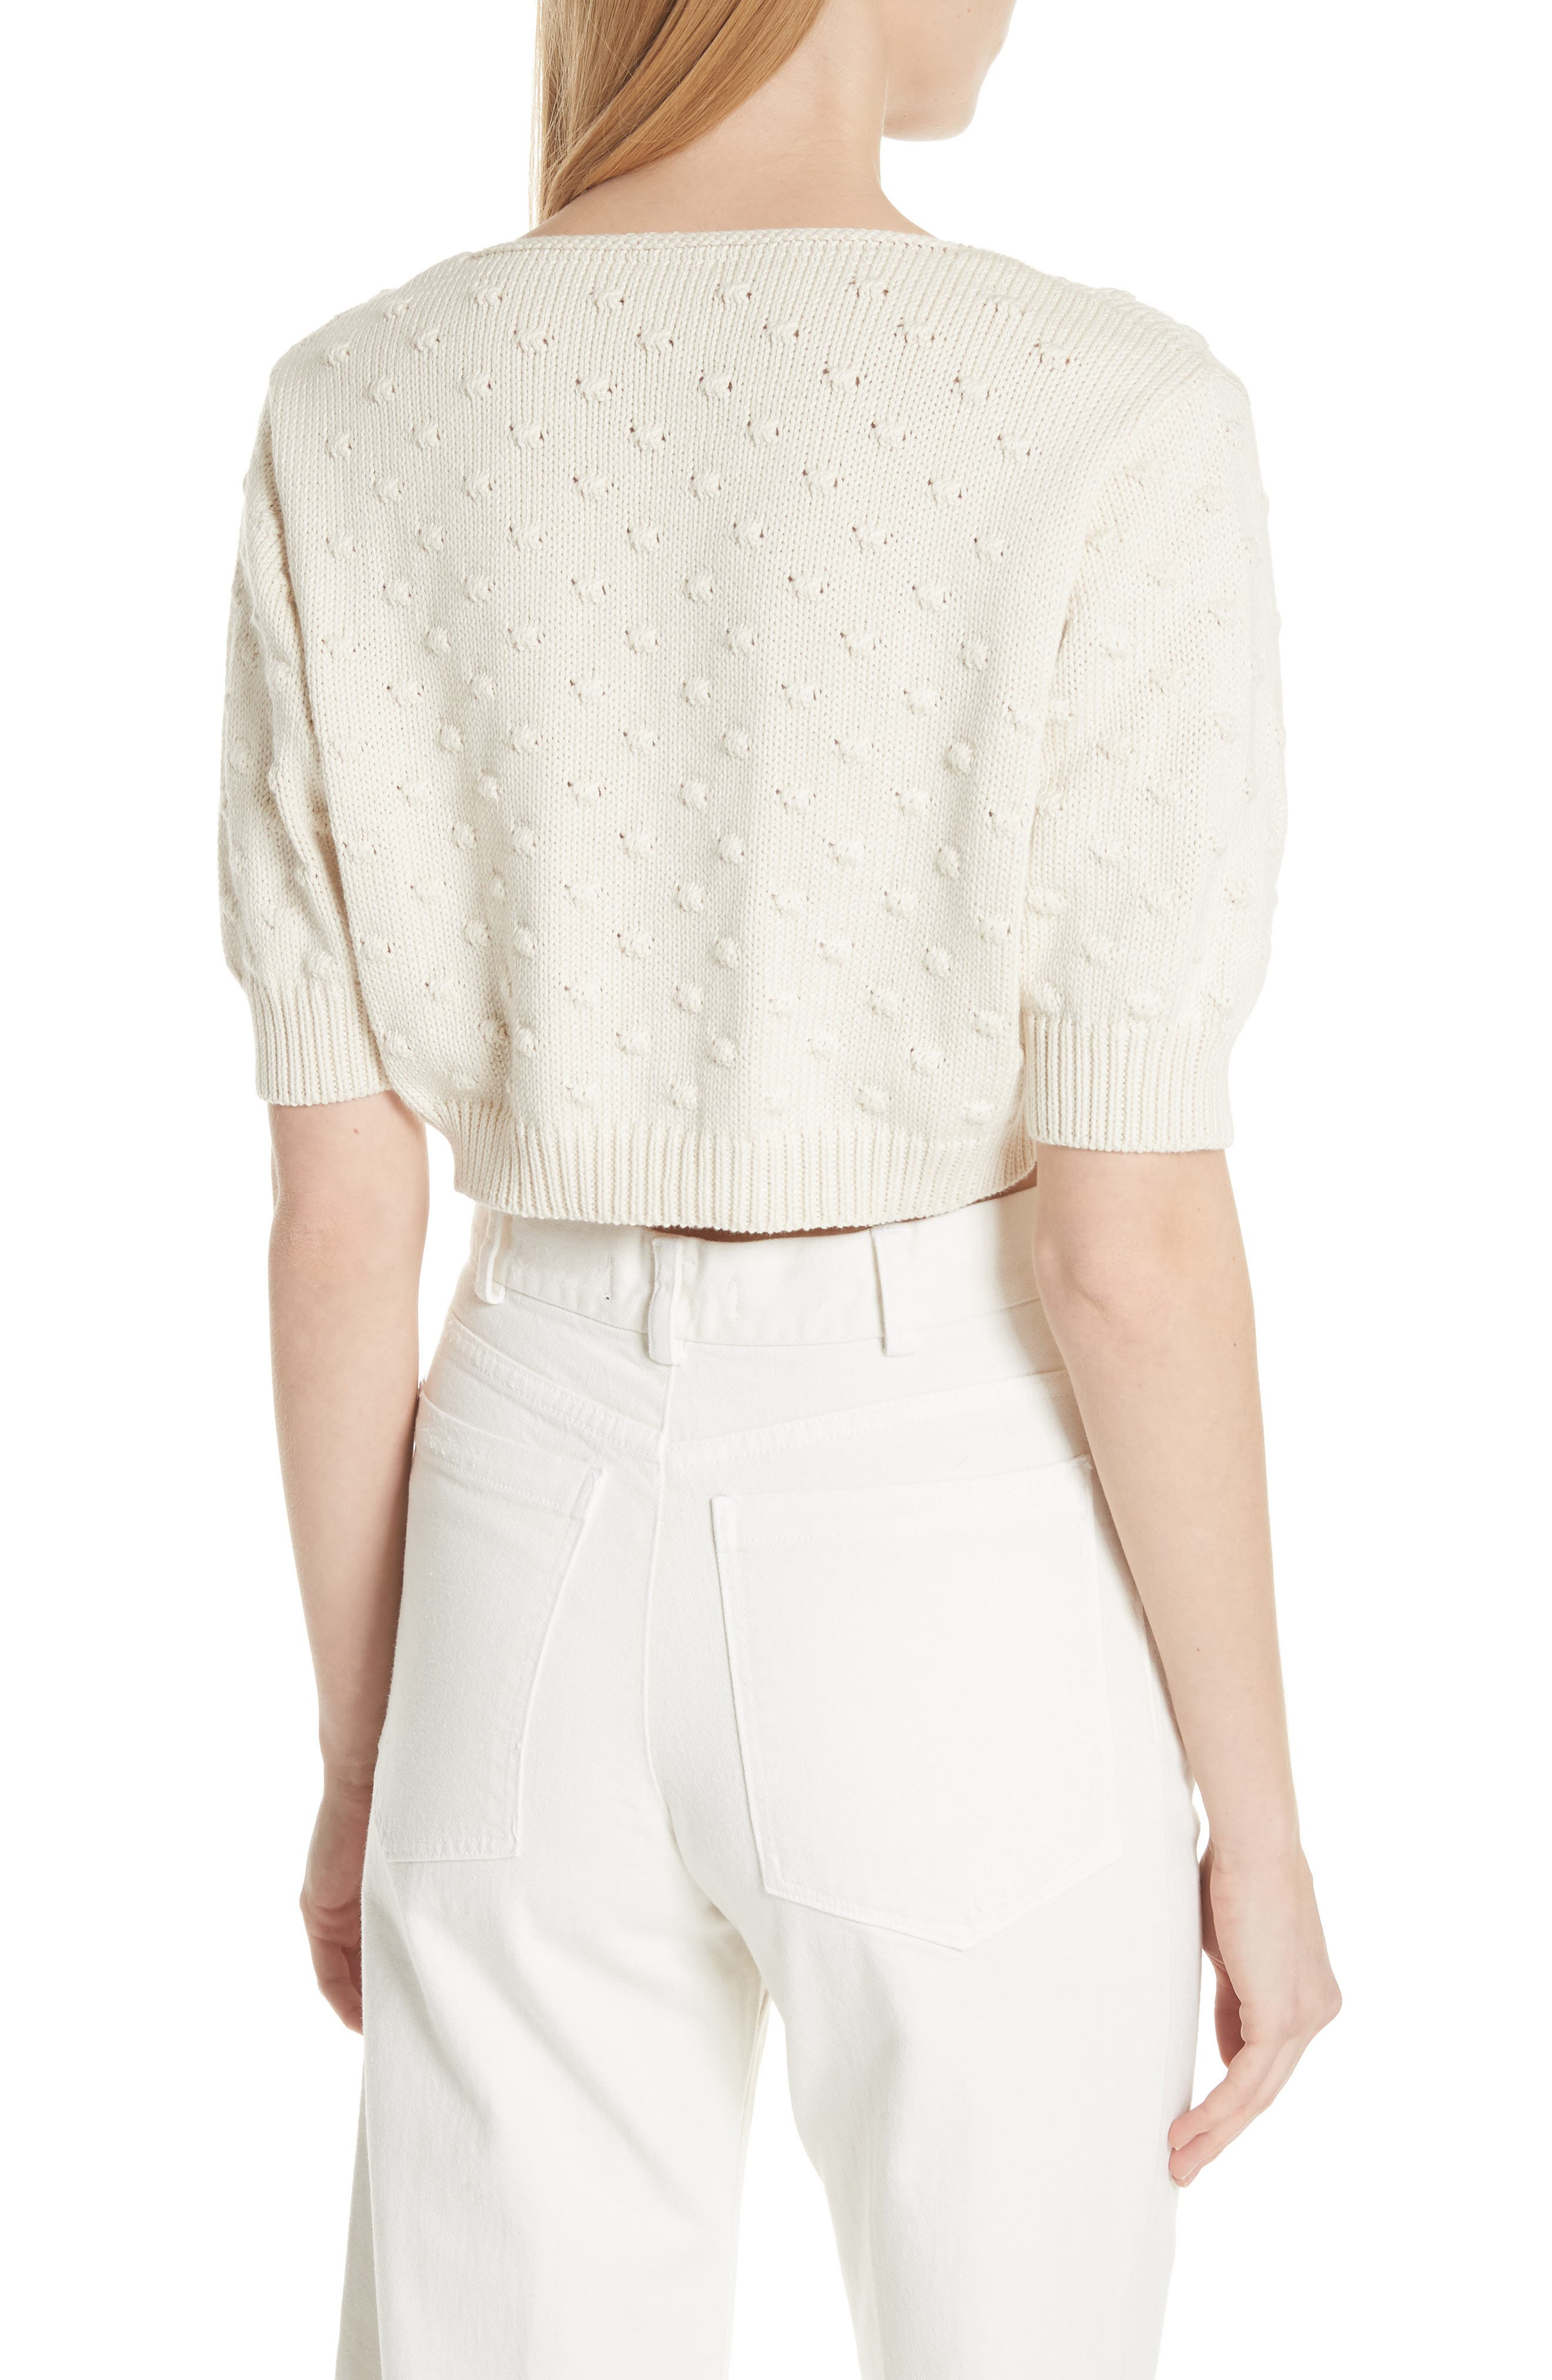 Ode Garbanzo Knit Crop Sweater,                             Alternate thumbnail 2, color,                             Ivory